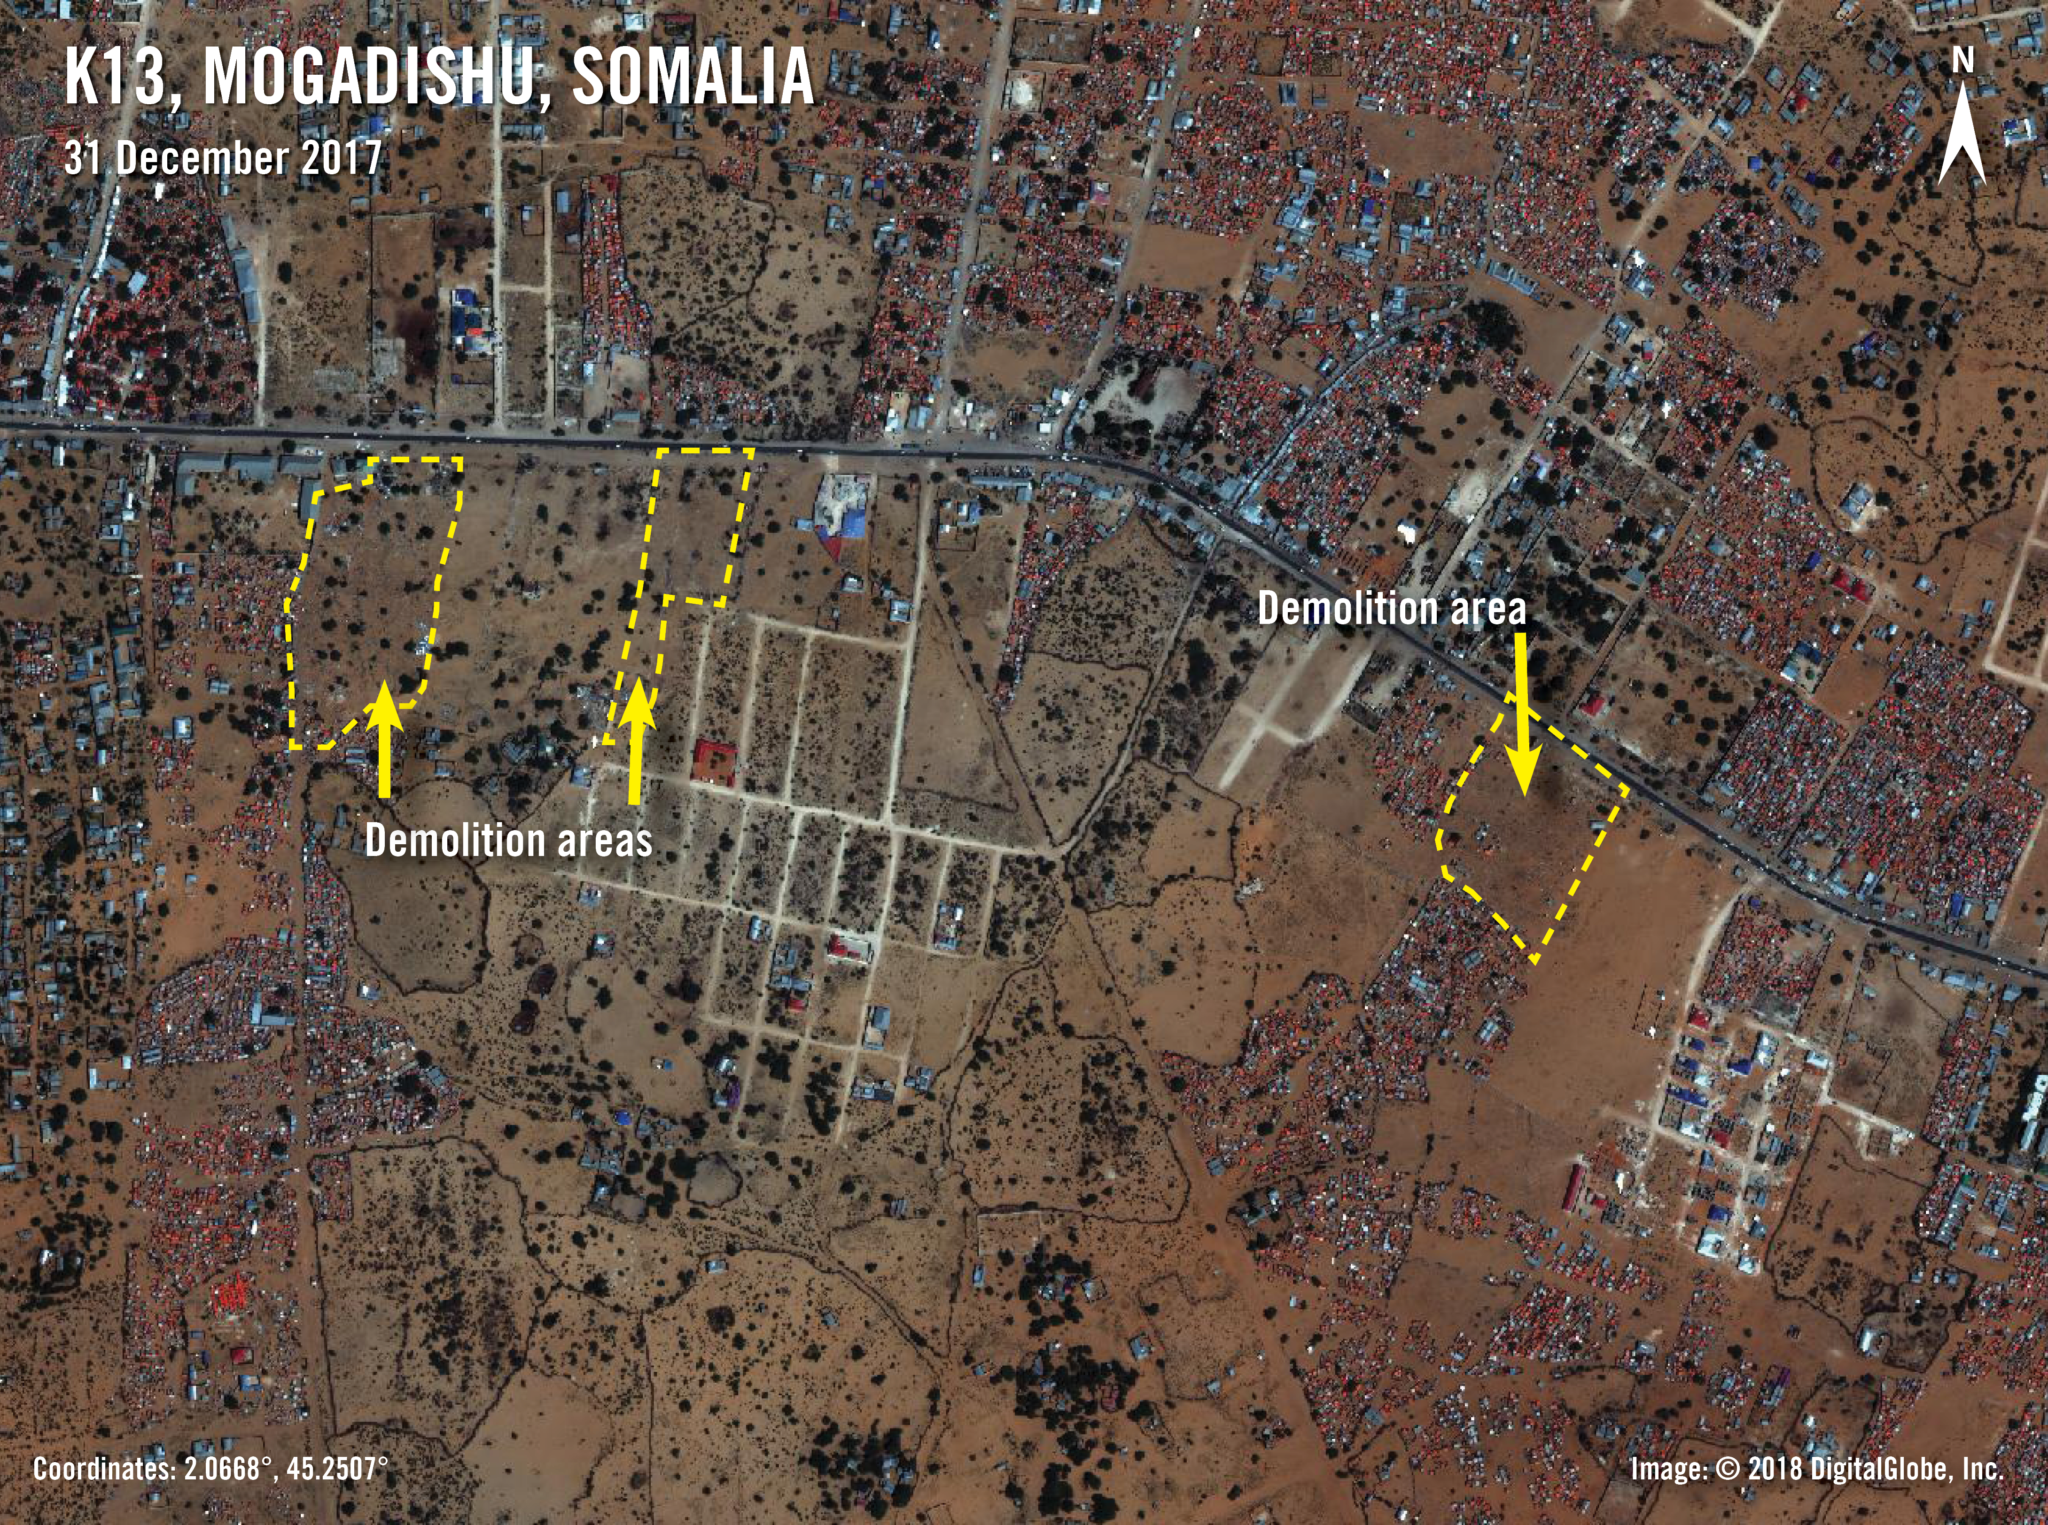 Somalia: Satellite imagery reveals devastation amid forced evictions of thousands who fled conflict and drought